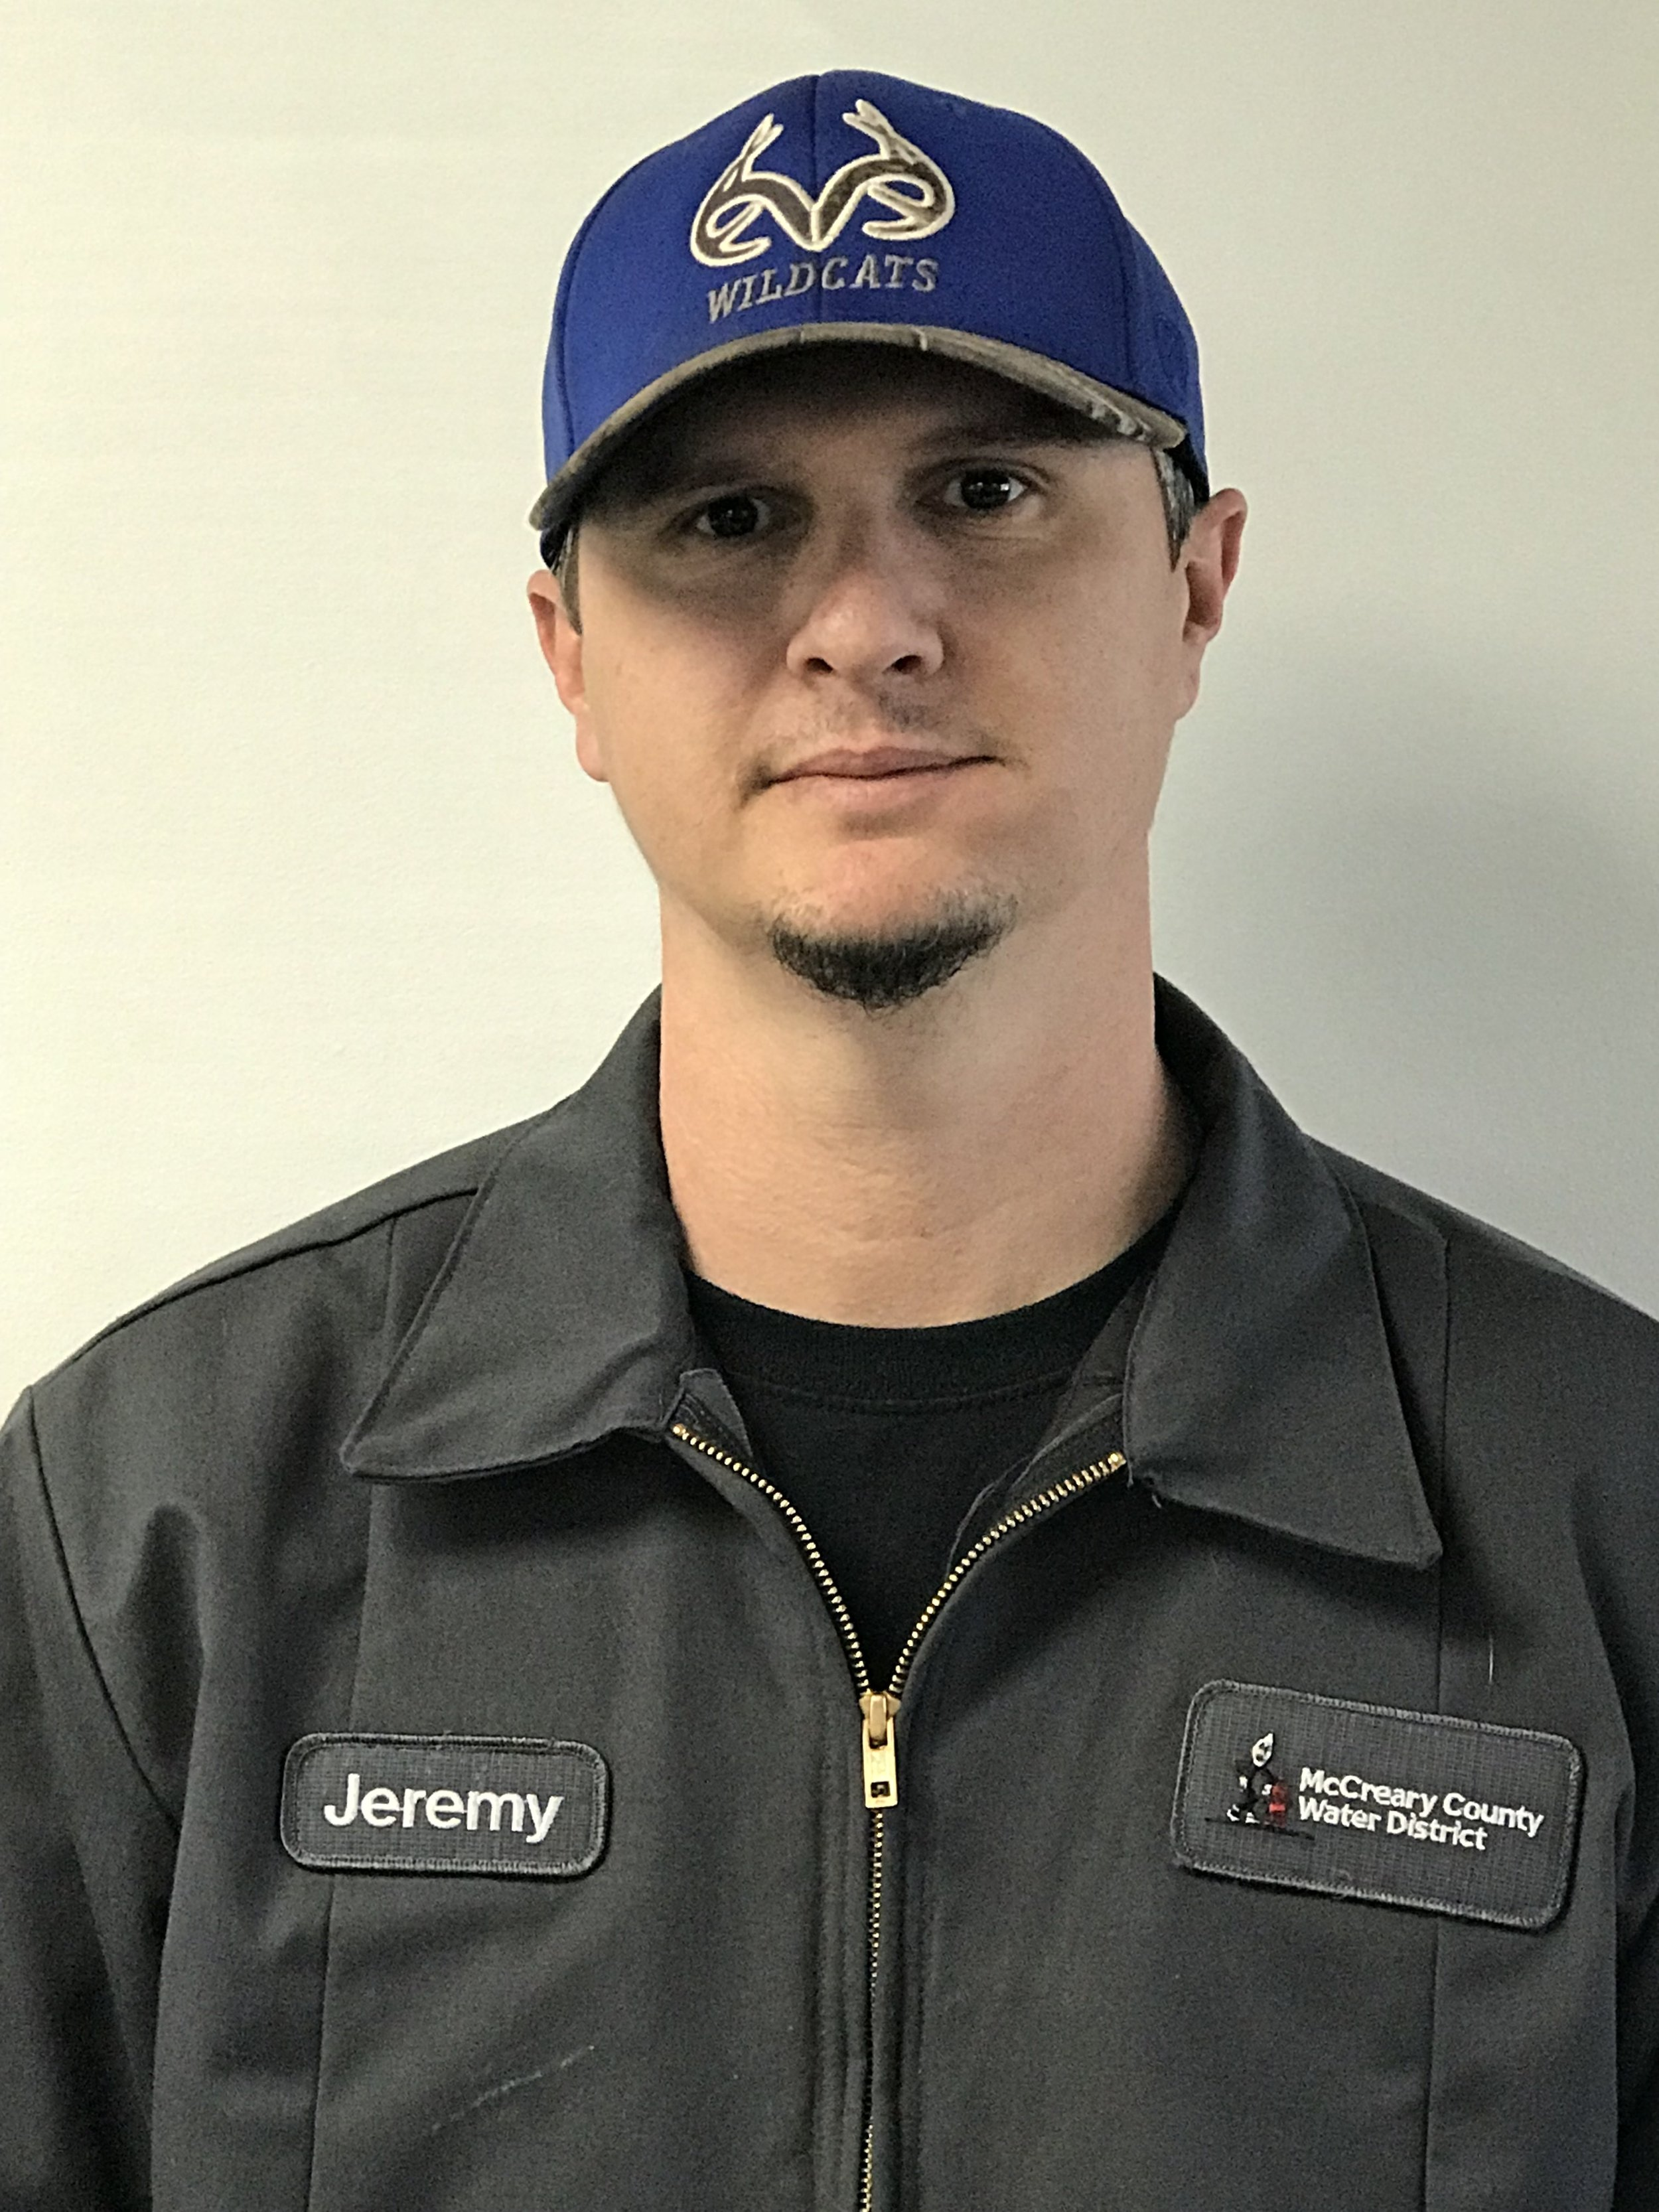 JEREMY TROXELL  has worked at the water district since 2004. He holds Drinking Water Treatment Class IV and Drinking Water Distribution Class III Certifications.